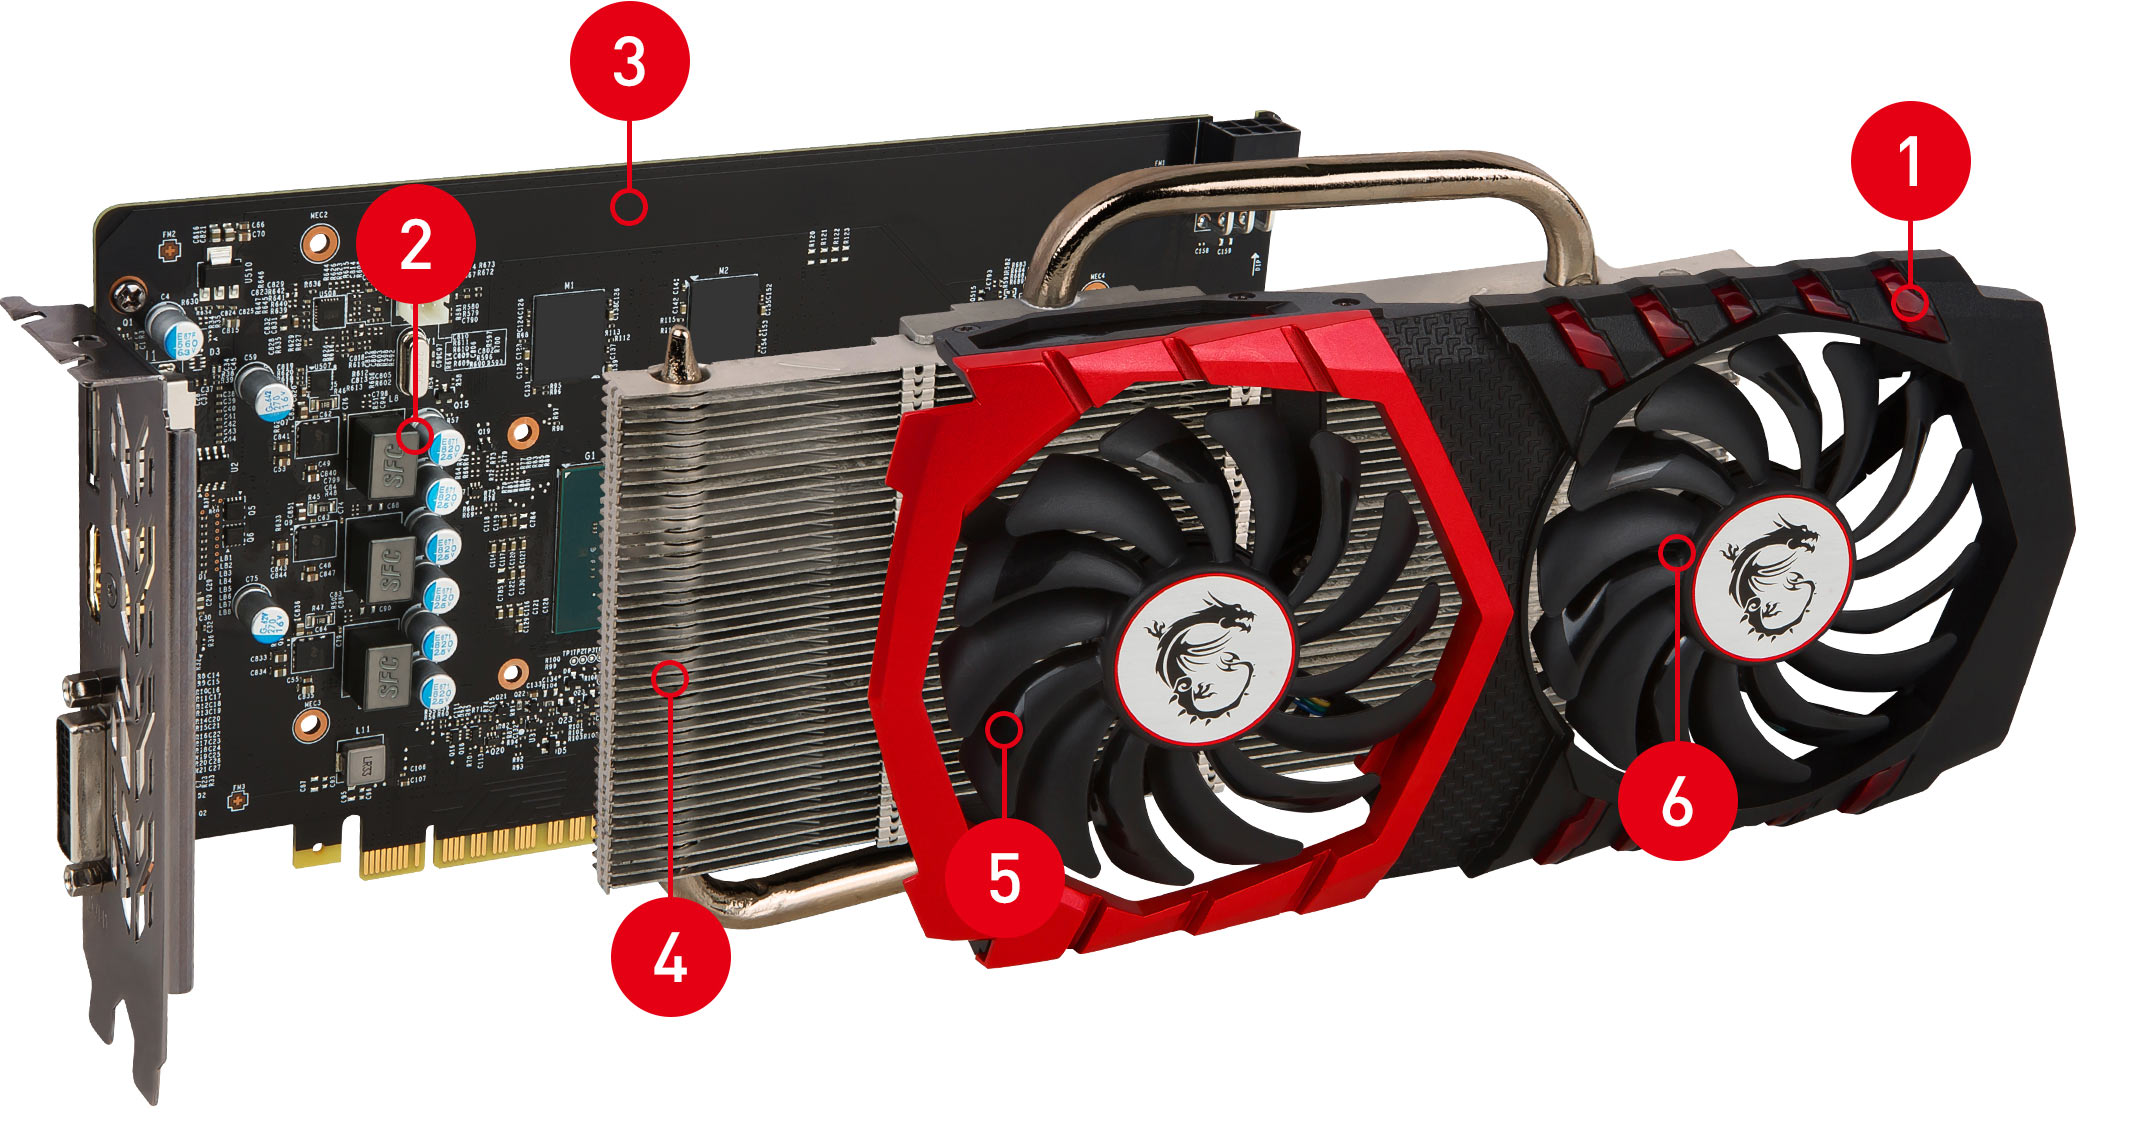 GTX 1050 GAMING X 8G exploded view